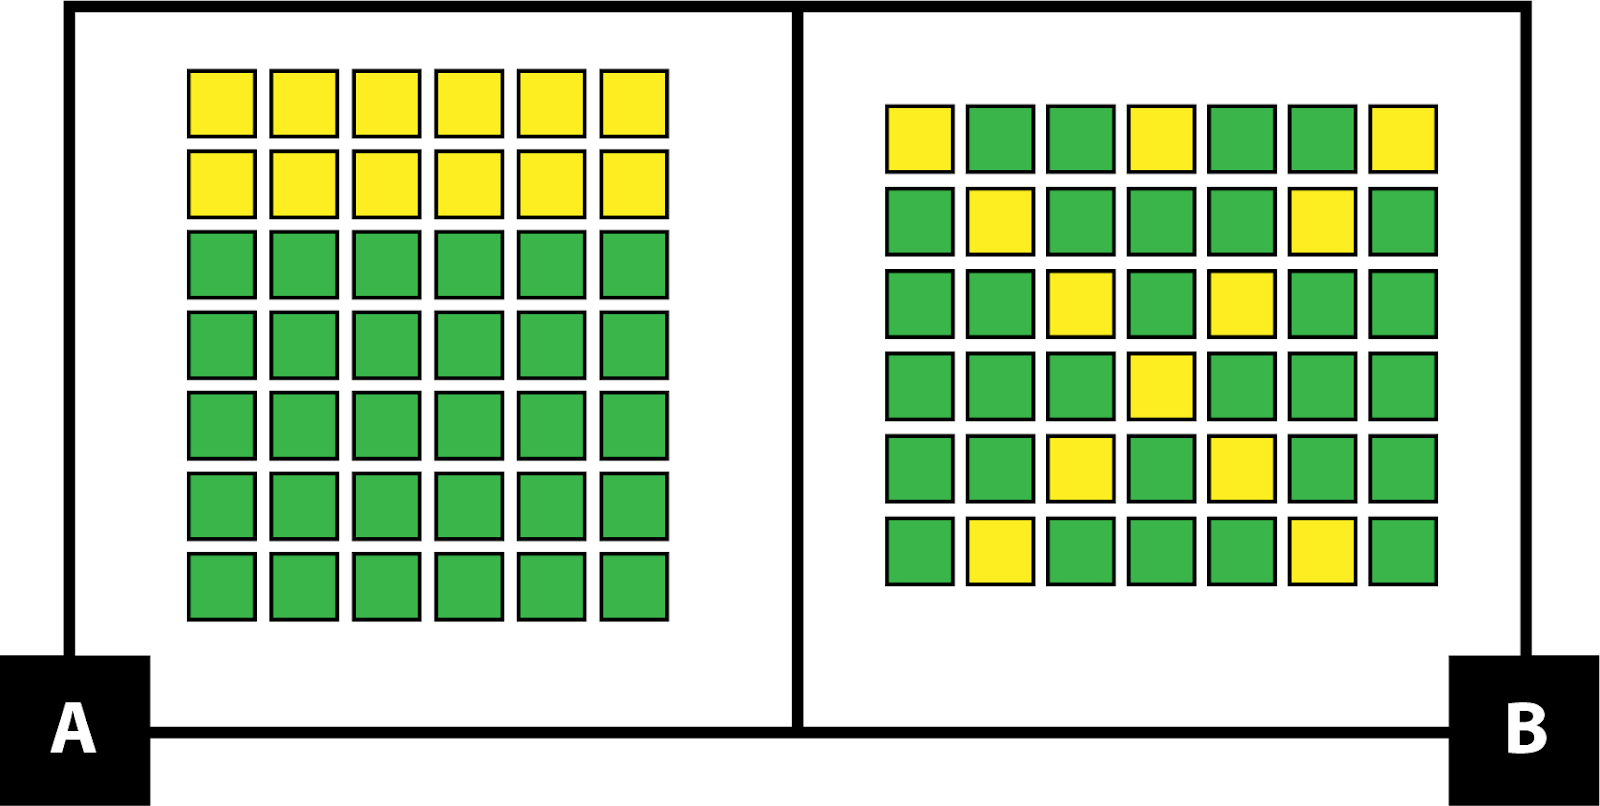 A. shows a 7 by 6 array of square tiles. The first two rows are yellow tiles. The other rows are green tiles. B. shows a 6 by 7 array of tiles. 6 yellow tiles make a diagonal line from the top left corner to the bottom row. Another 6 yellow tiles make a diagonal line from the top right corner to the bottom row. The middle tile in the top row is also yellow. The rest of the tiles are green.